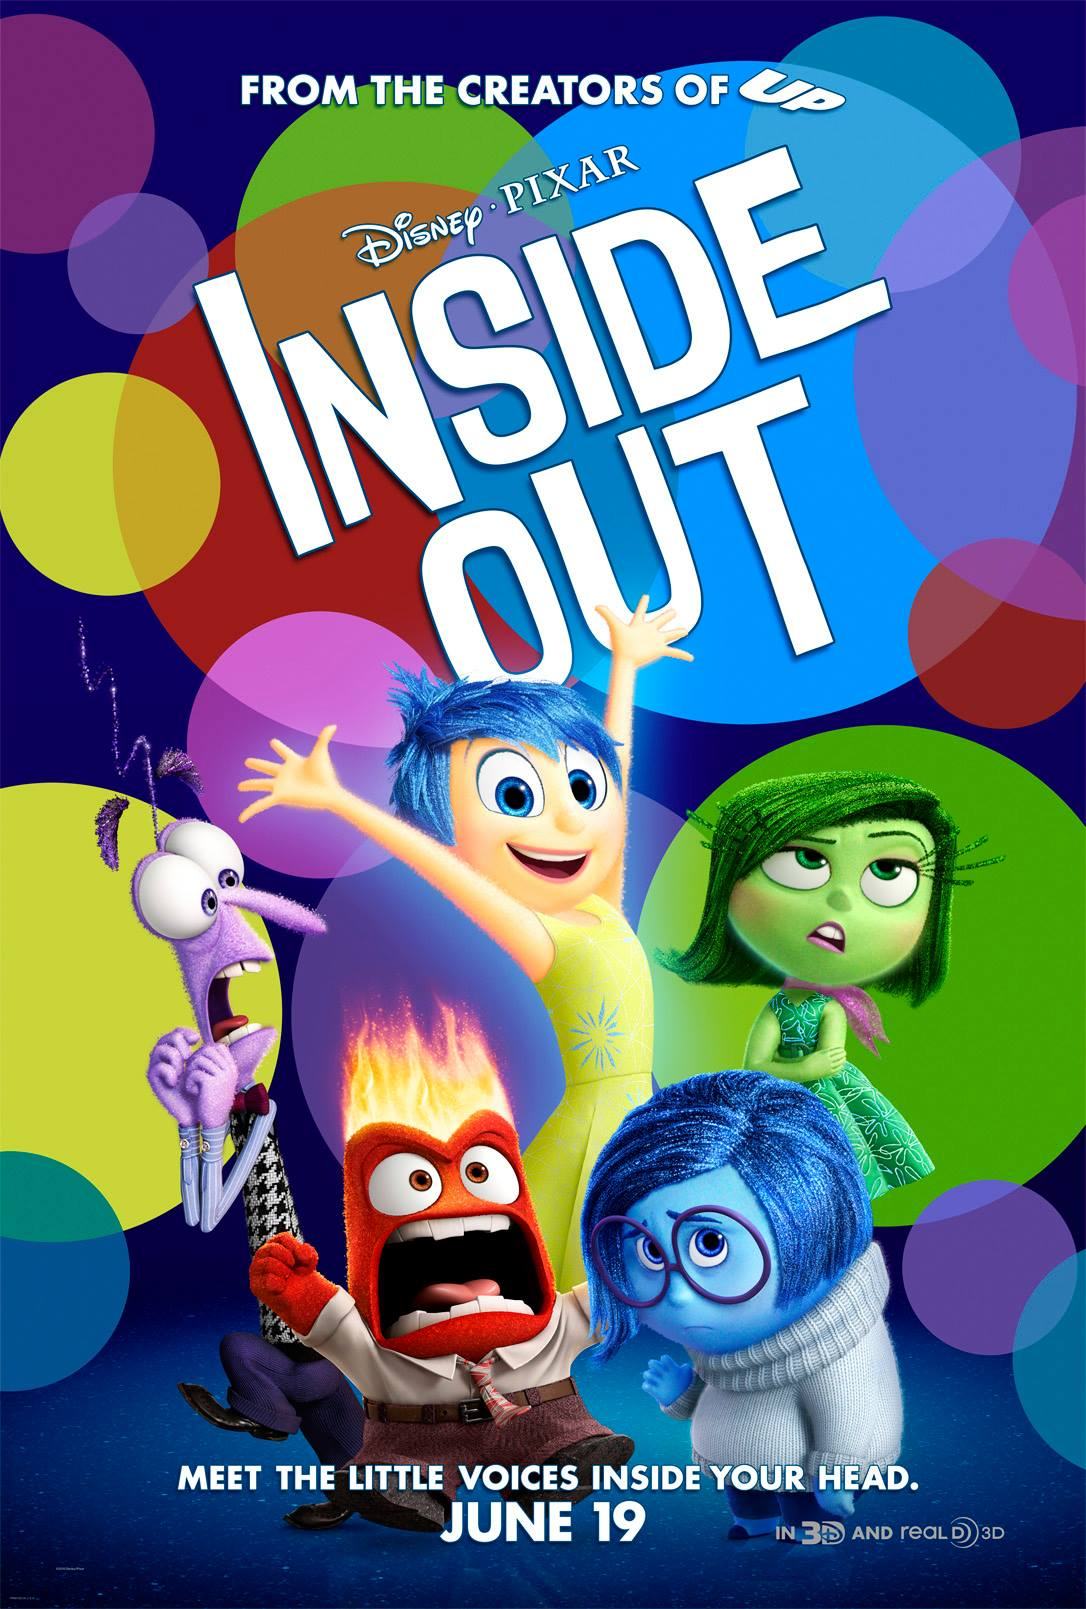 Inside Out (2015) Movie Poster Google image from http://www.fatmovieguy.com/disney-pixars-inside-out-trailer-2-and-movie-poster/